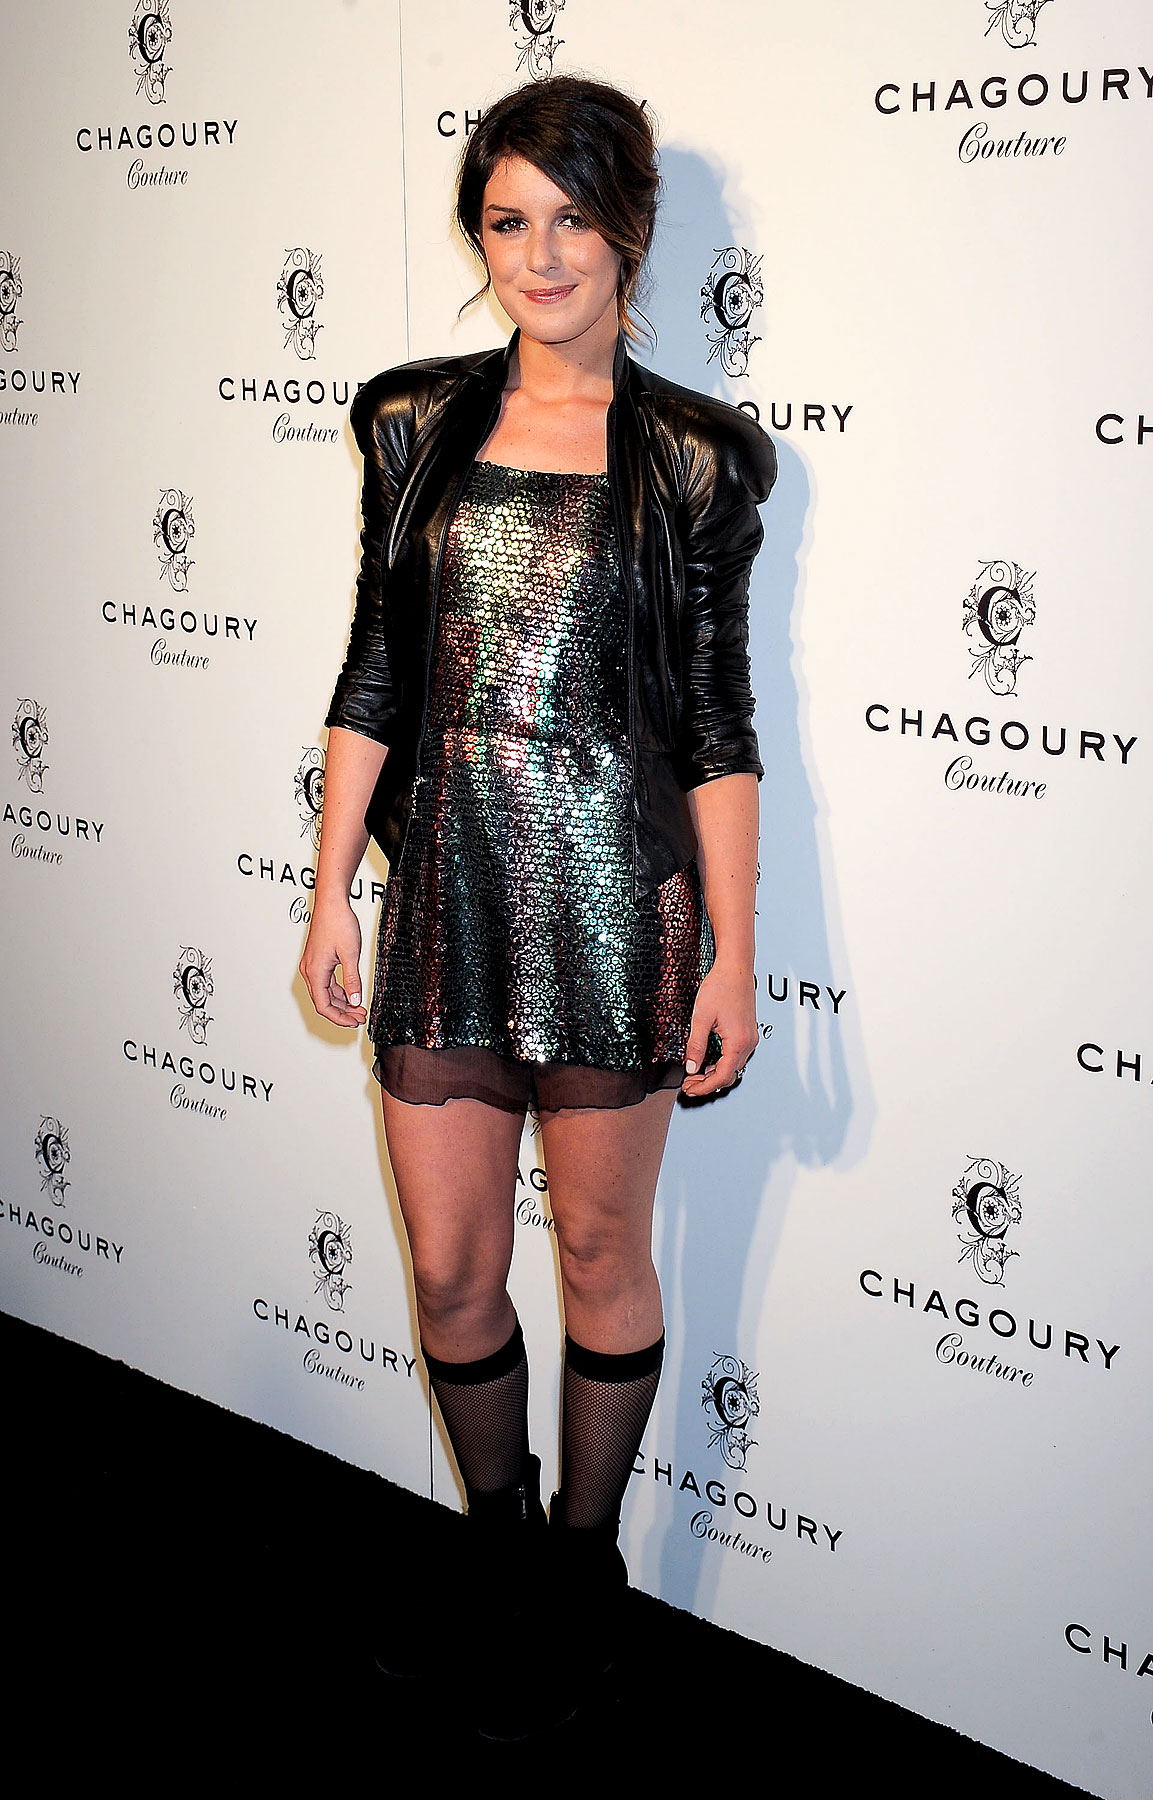 Fashion FAIL: Shenae Grimes Wears Fishnet Support Hose (PHOTOS)